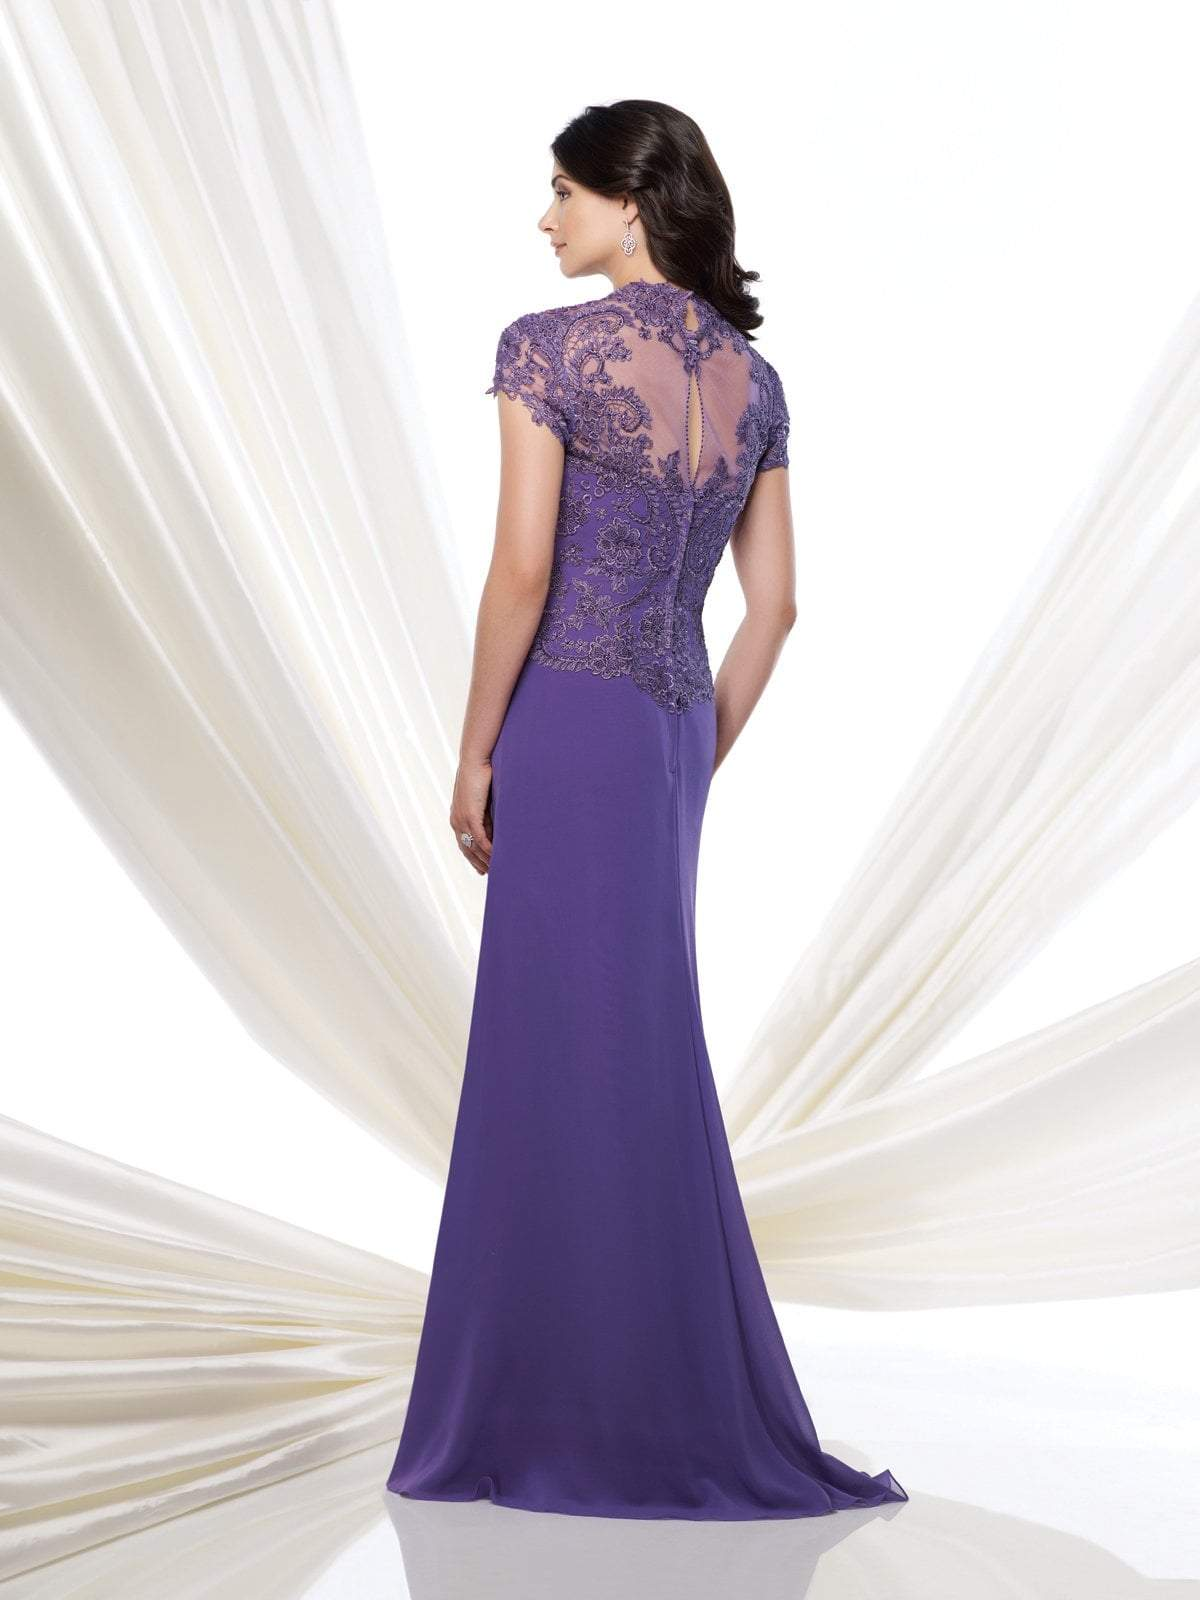 Mon Cheri - 115974SC Beaded Lace Queen Anne Evening Dress